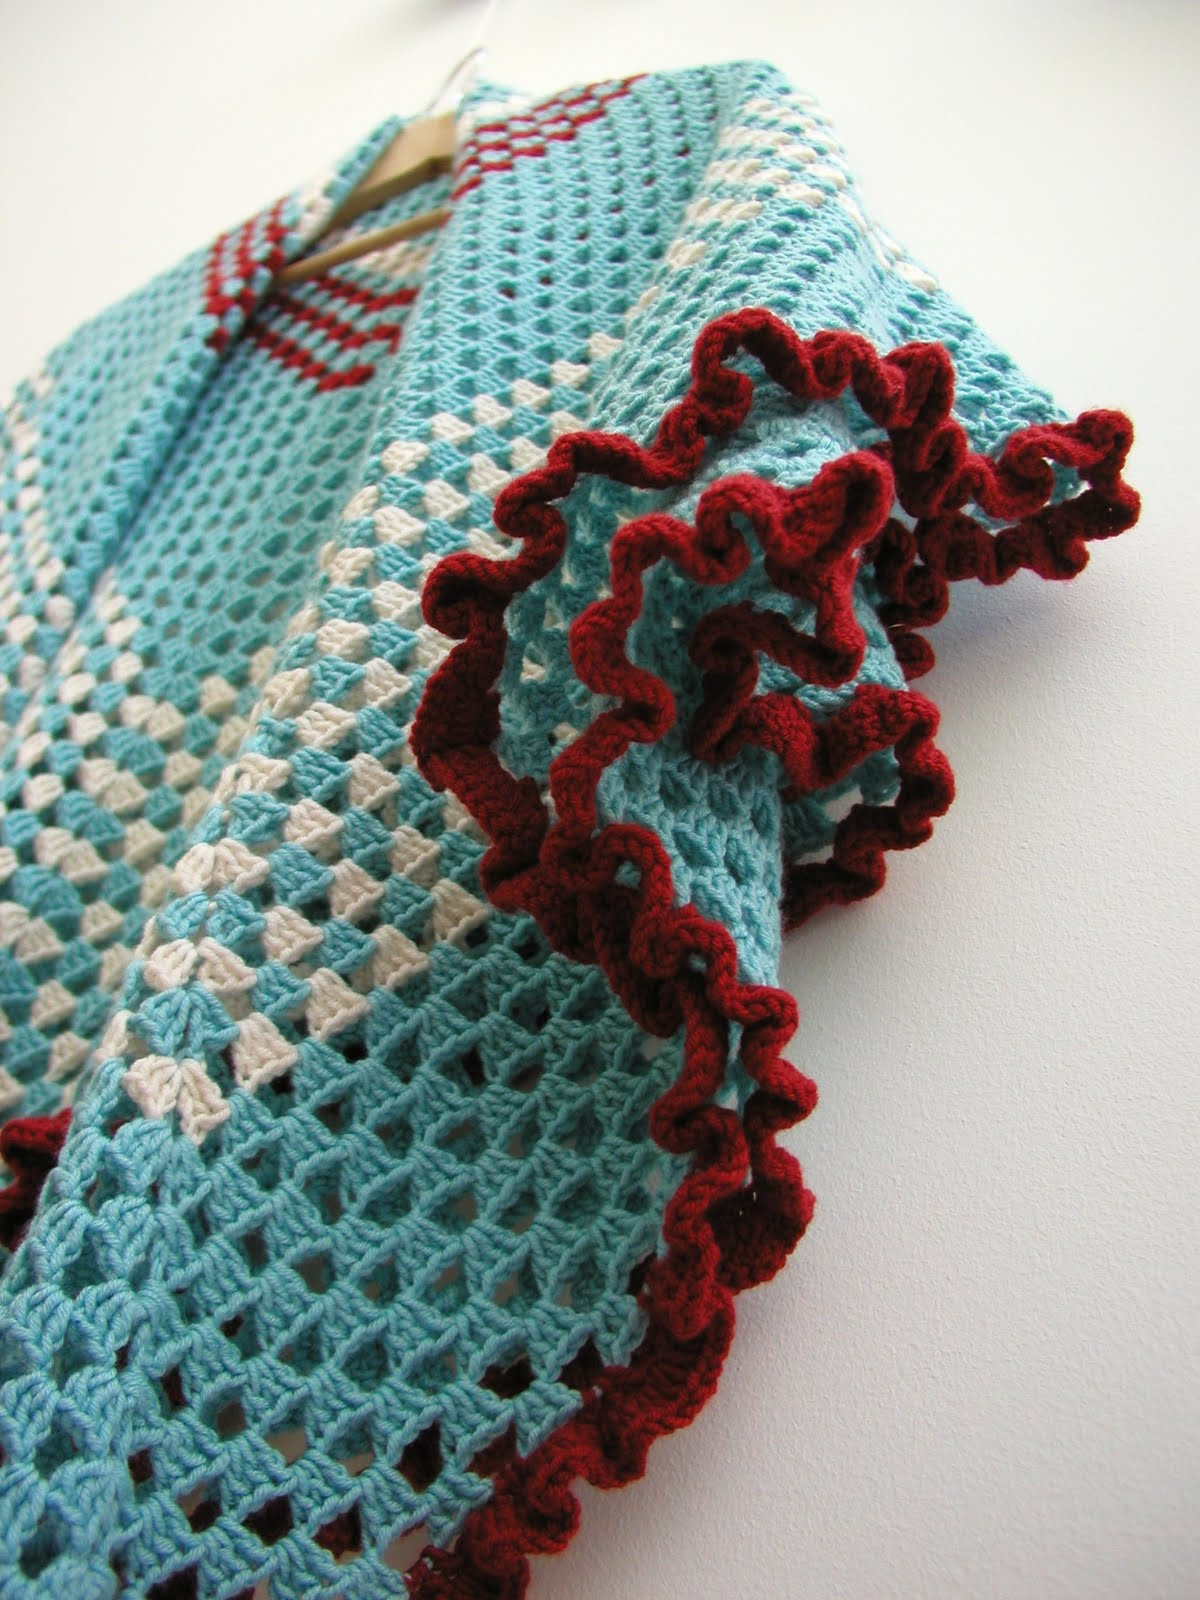 Crocheting Ruffles : Crochet Ruffle Throw